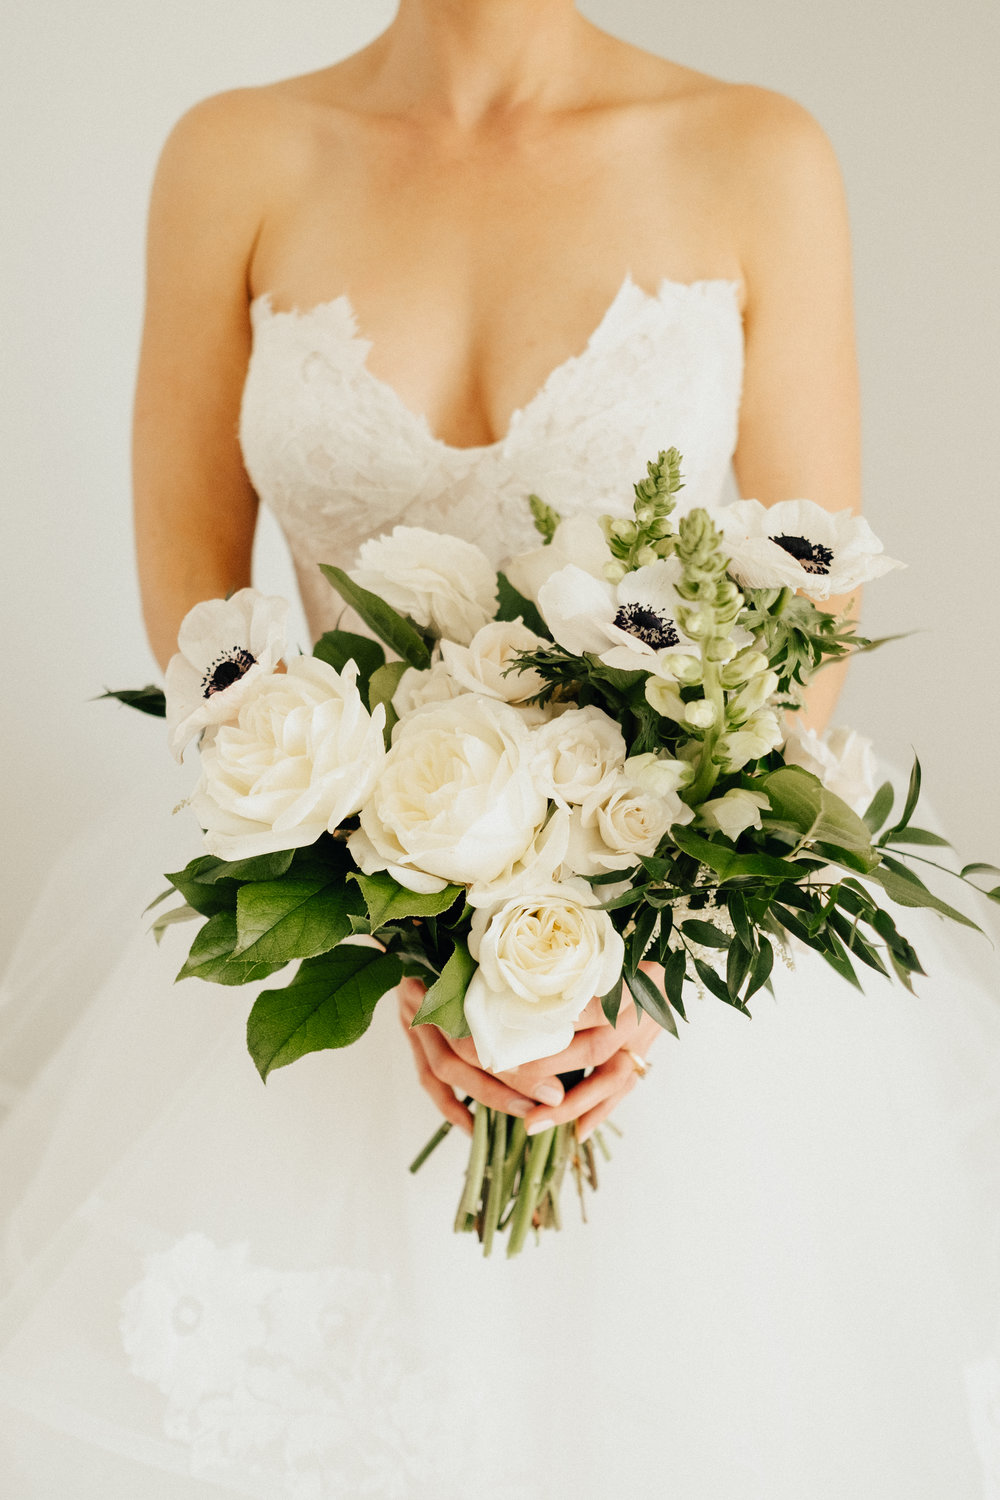 Black & White Bridal Bouquet Inspiration